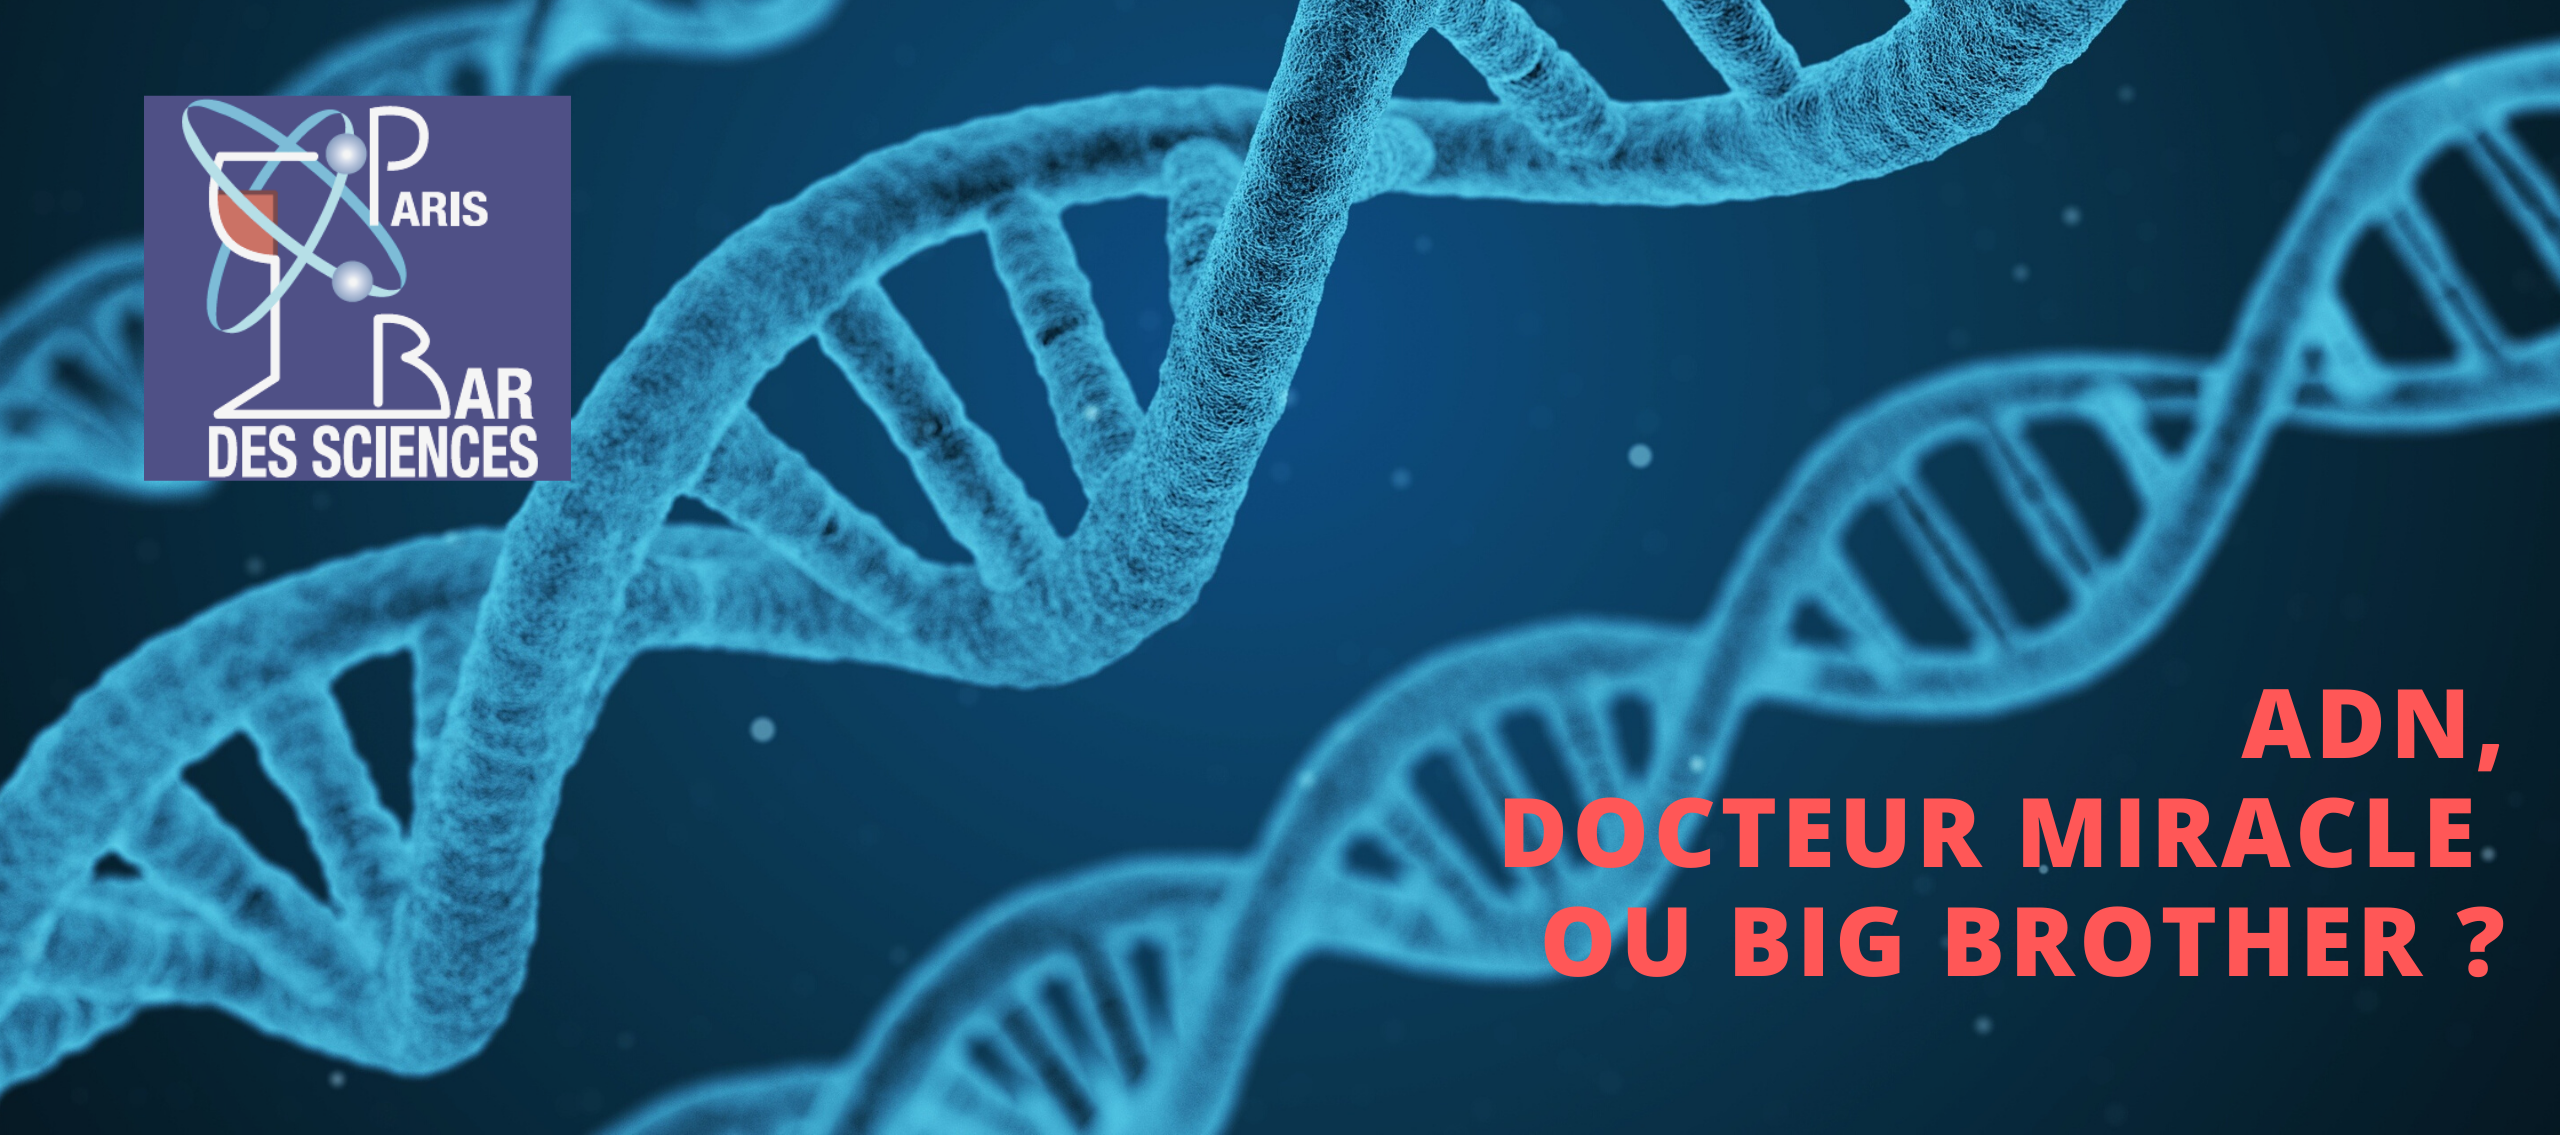 5 Février 2020 - ADN, docteur miracle ou big brother ?